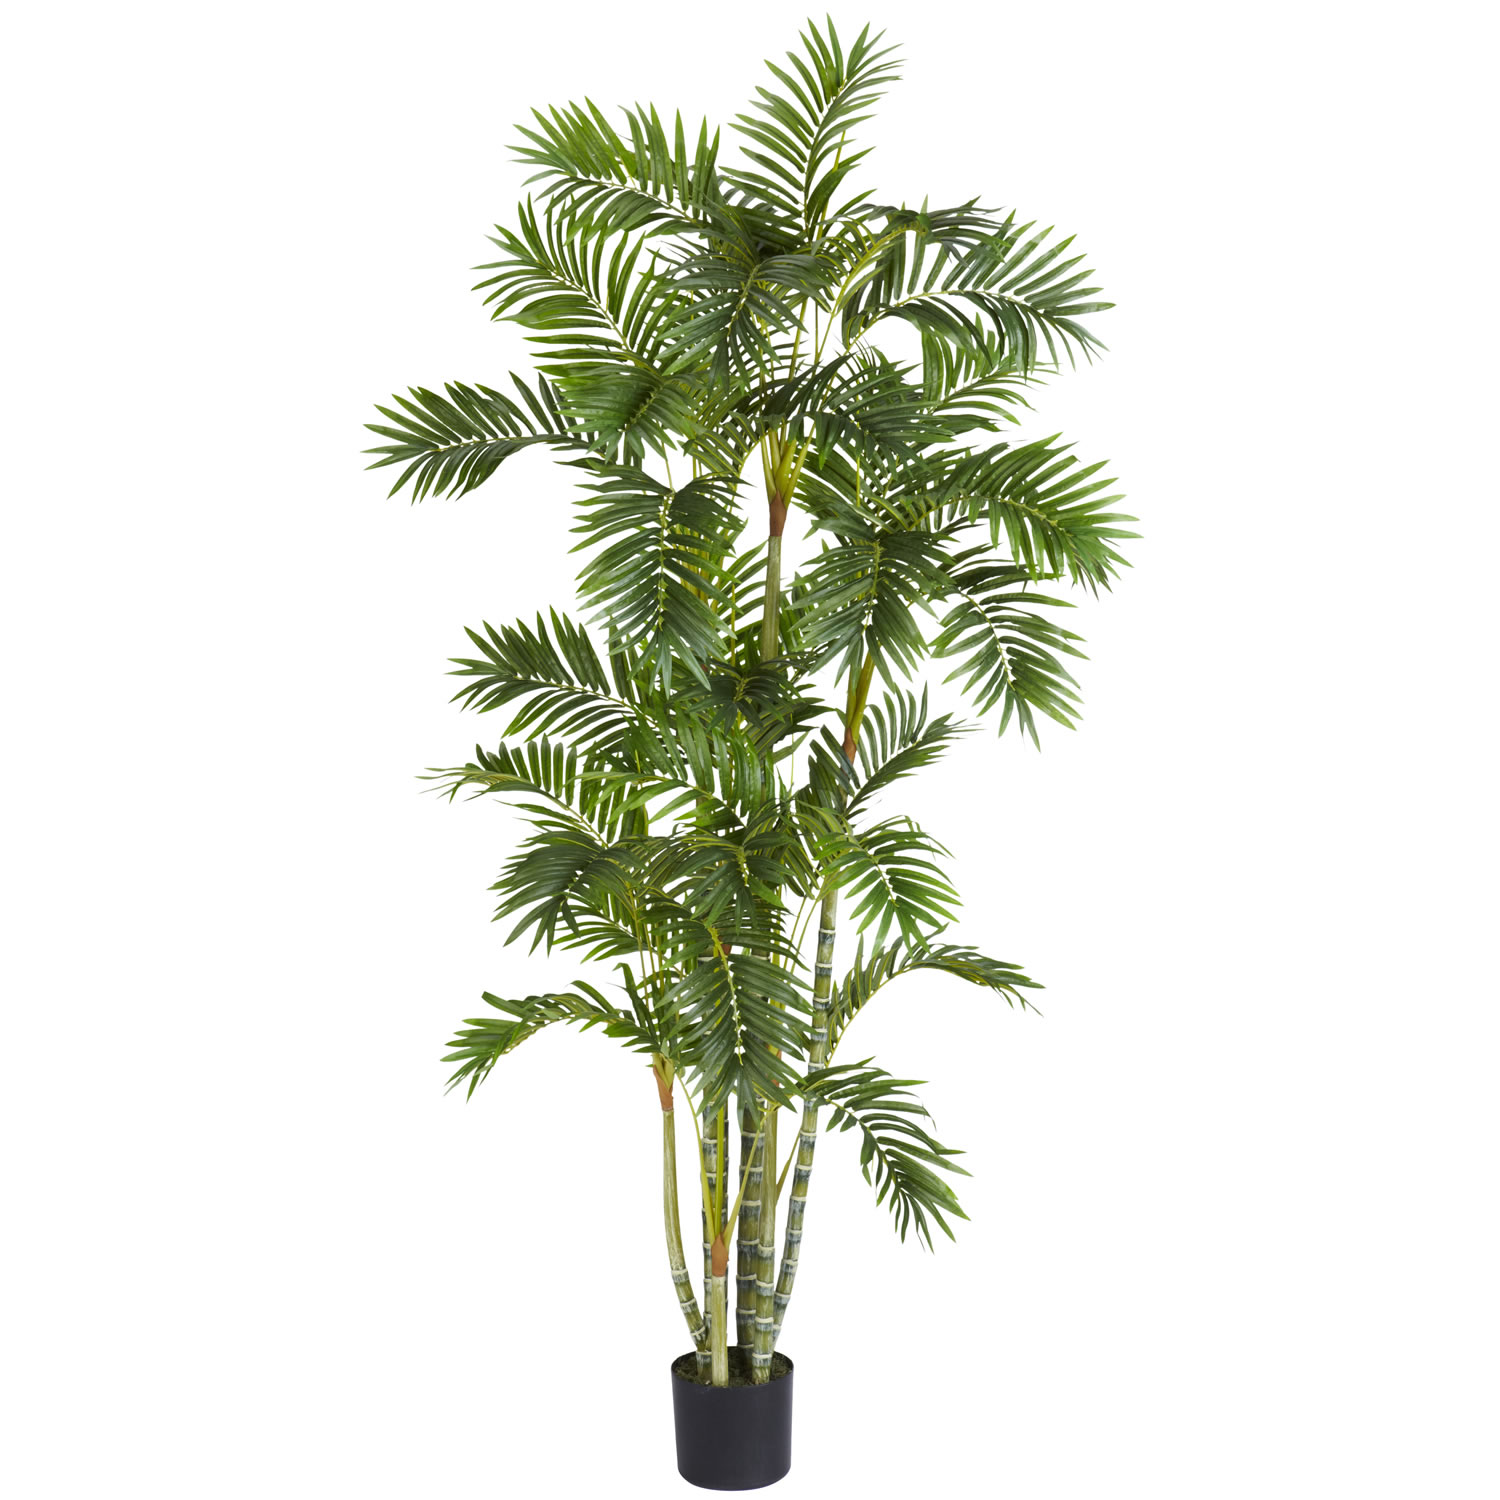 6 foot areca palm tree potted 5337 for Pictures of areca palm plants